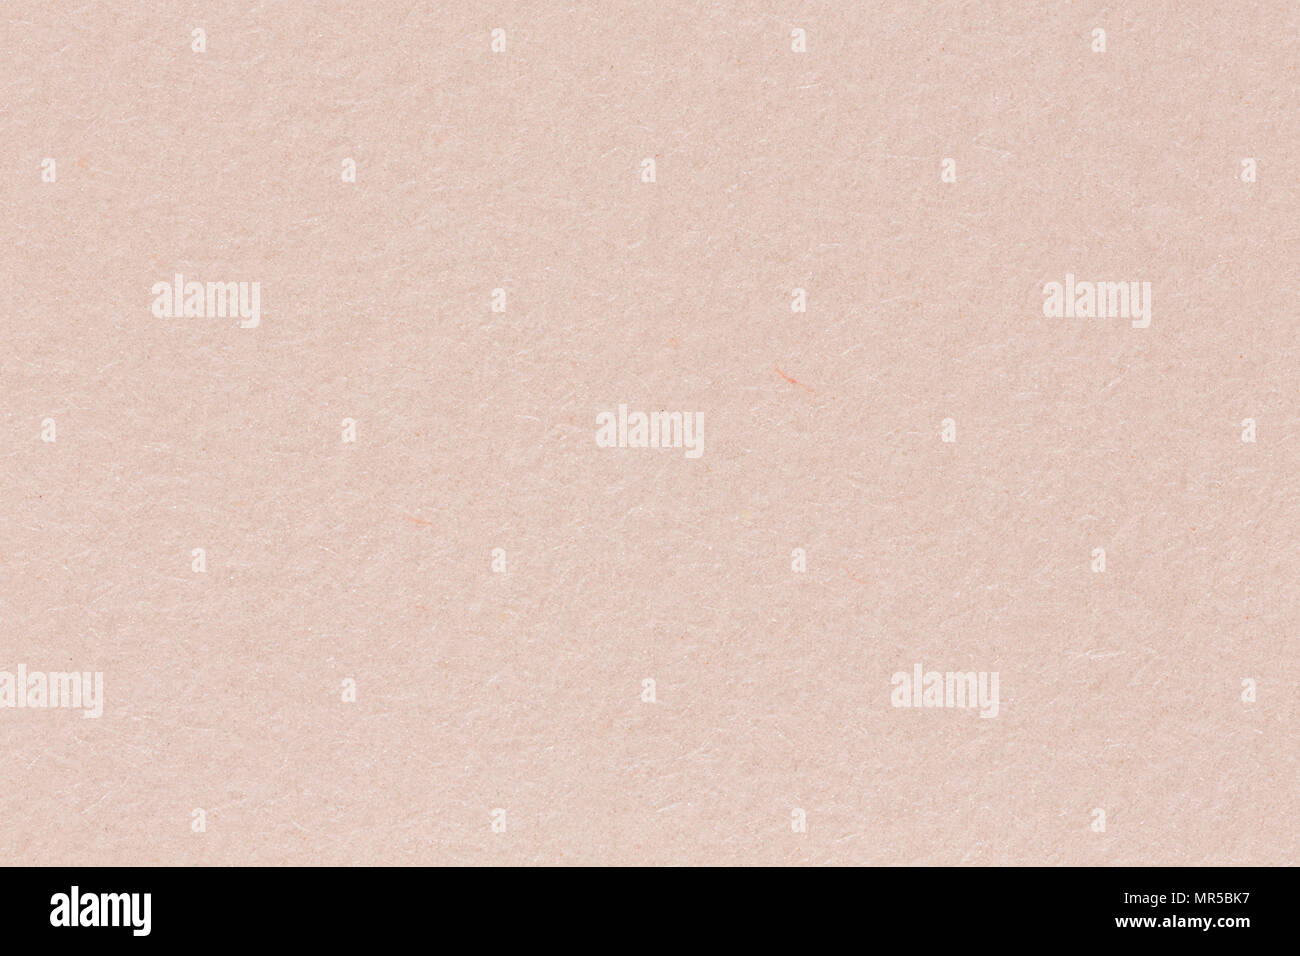 A Warm Toned Off White Paper Background With Finely Textured